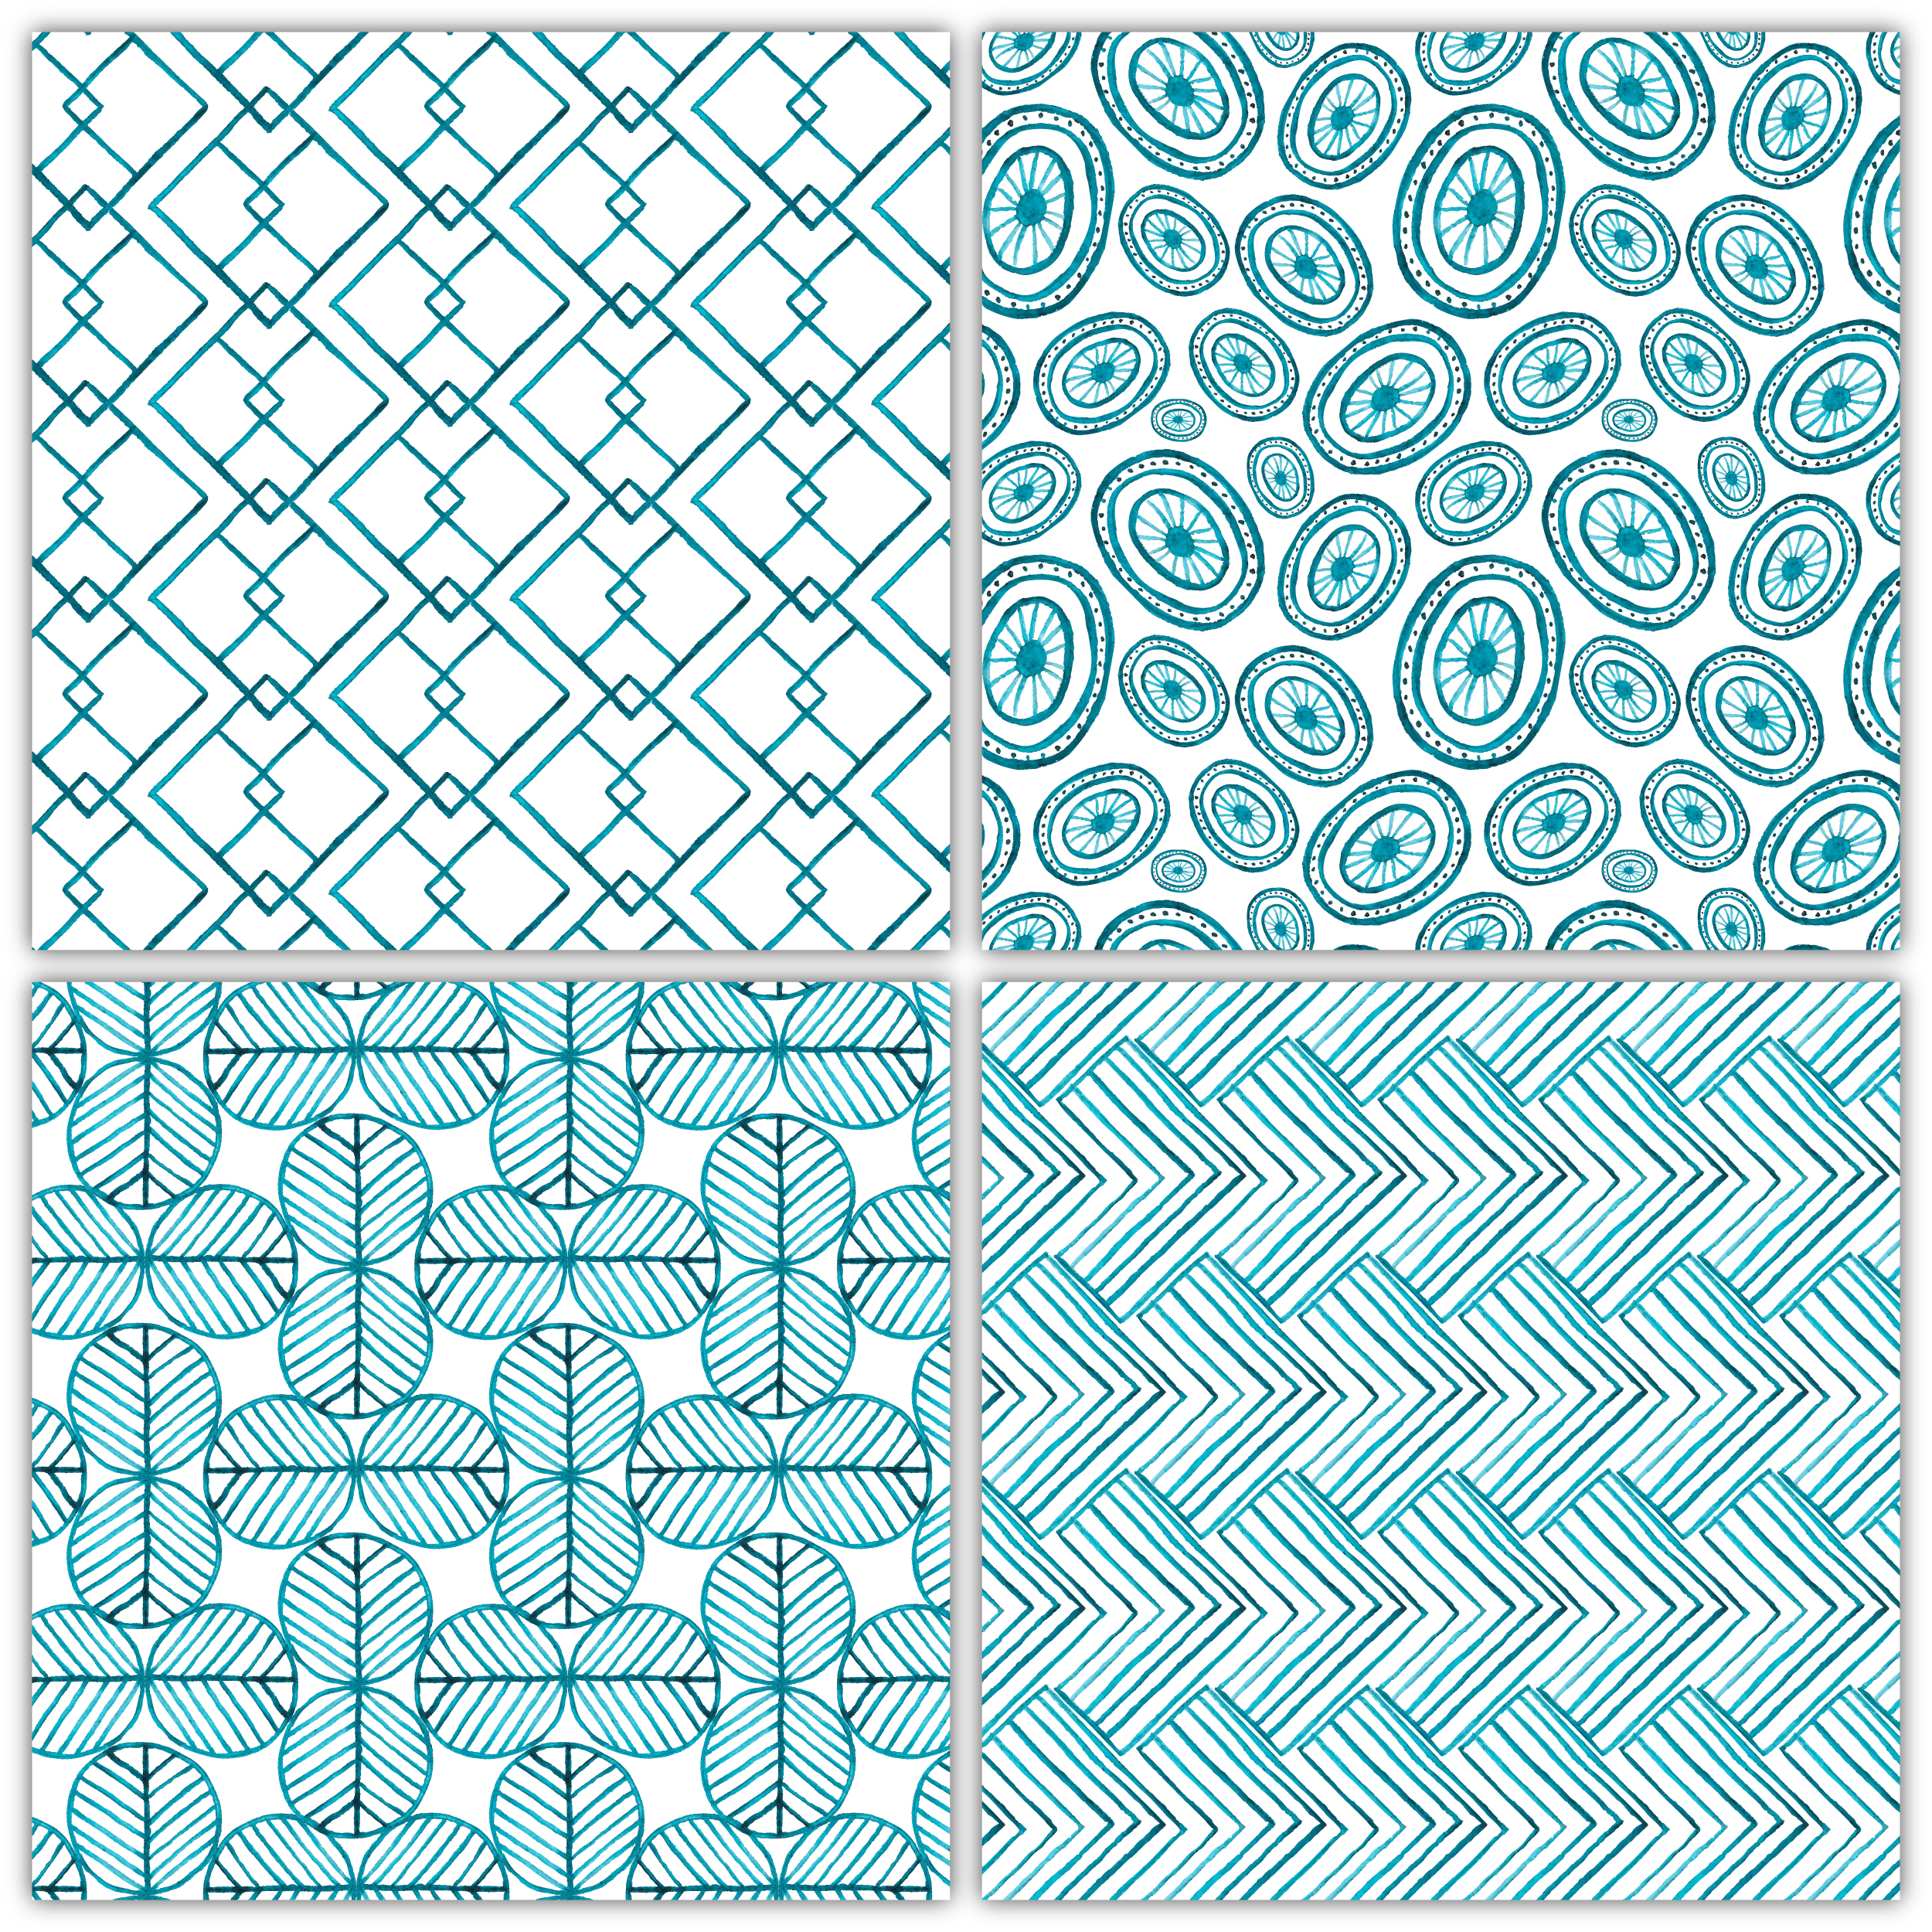 seamless geometrical patterns, the elements are hand painted watercolor item